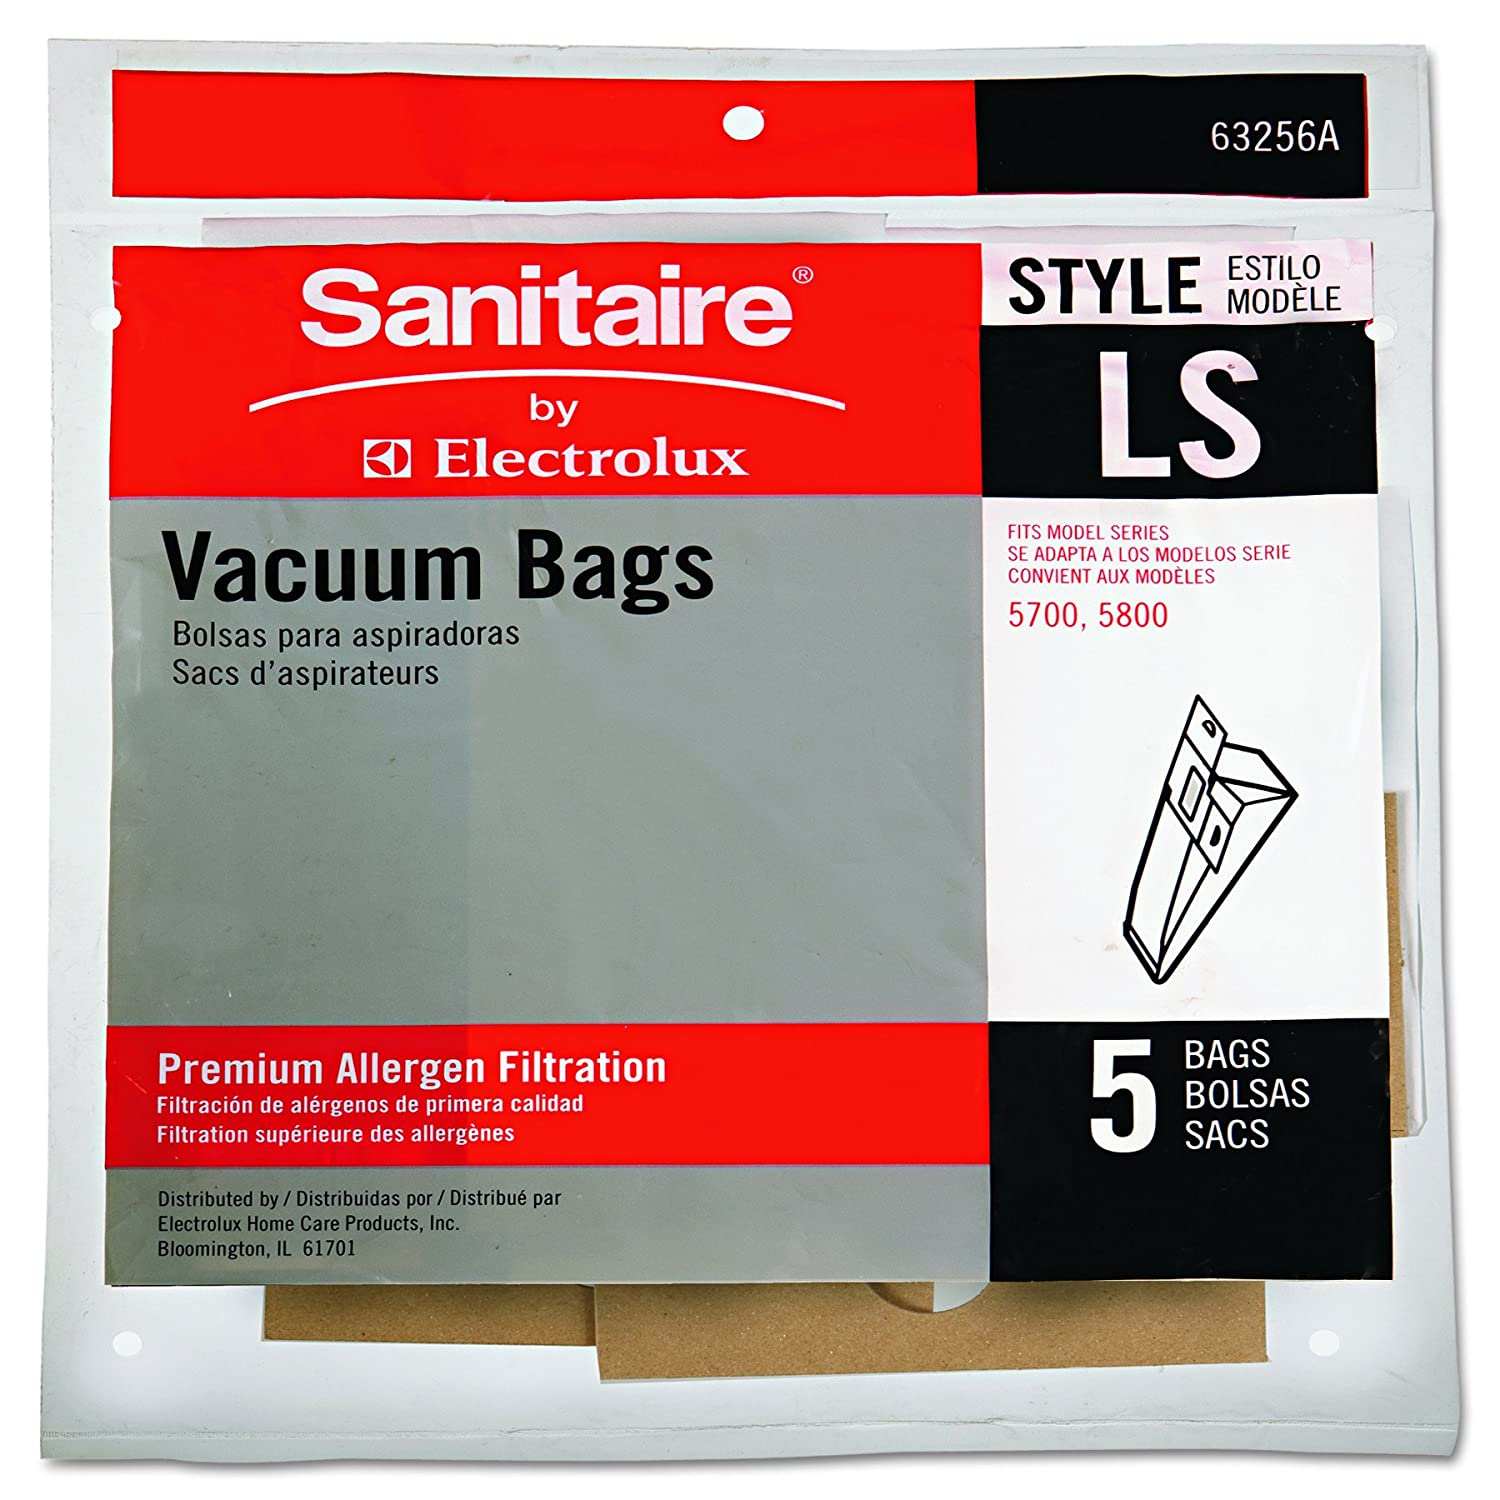 Eureka 63256A10 Commercial Upright Vacuum Cleaner Replacement Bags, Style LS, Pack of 5